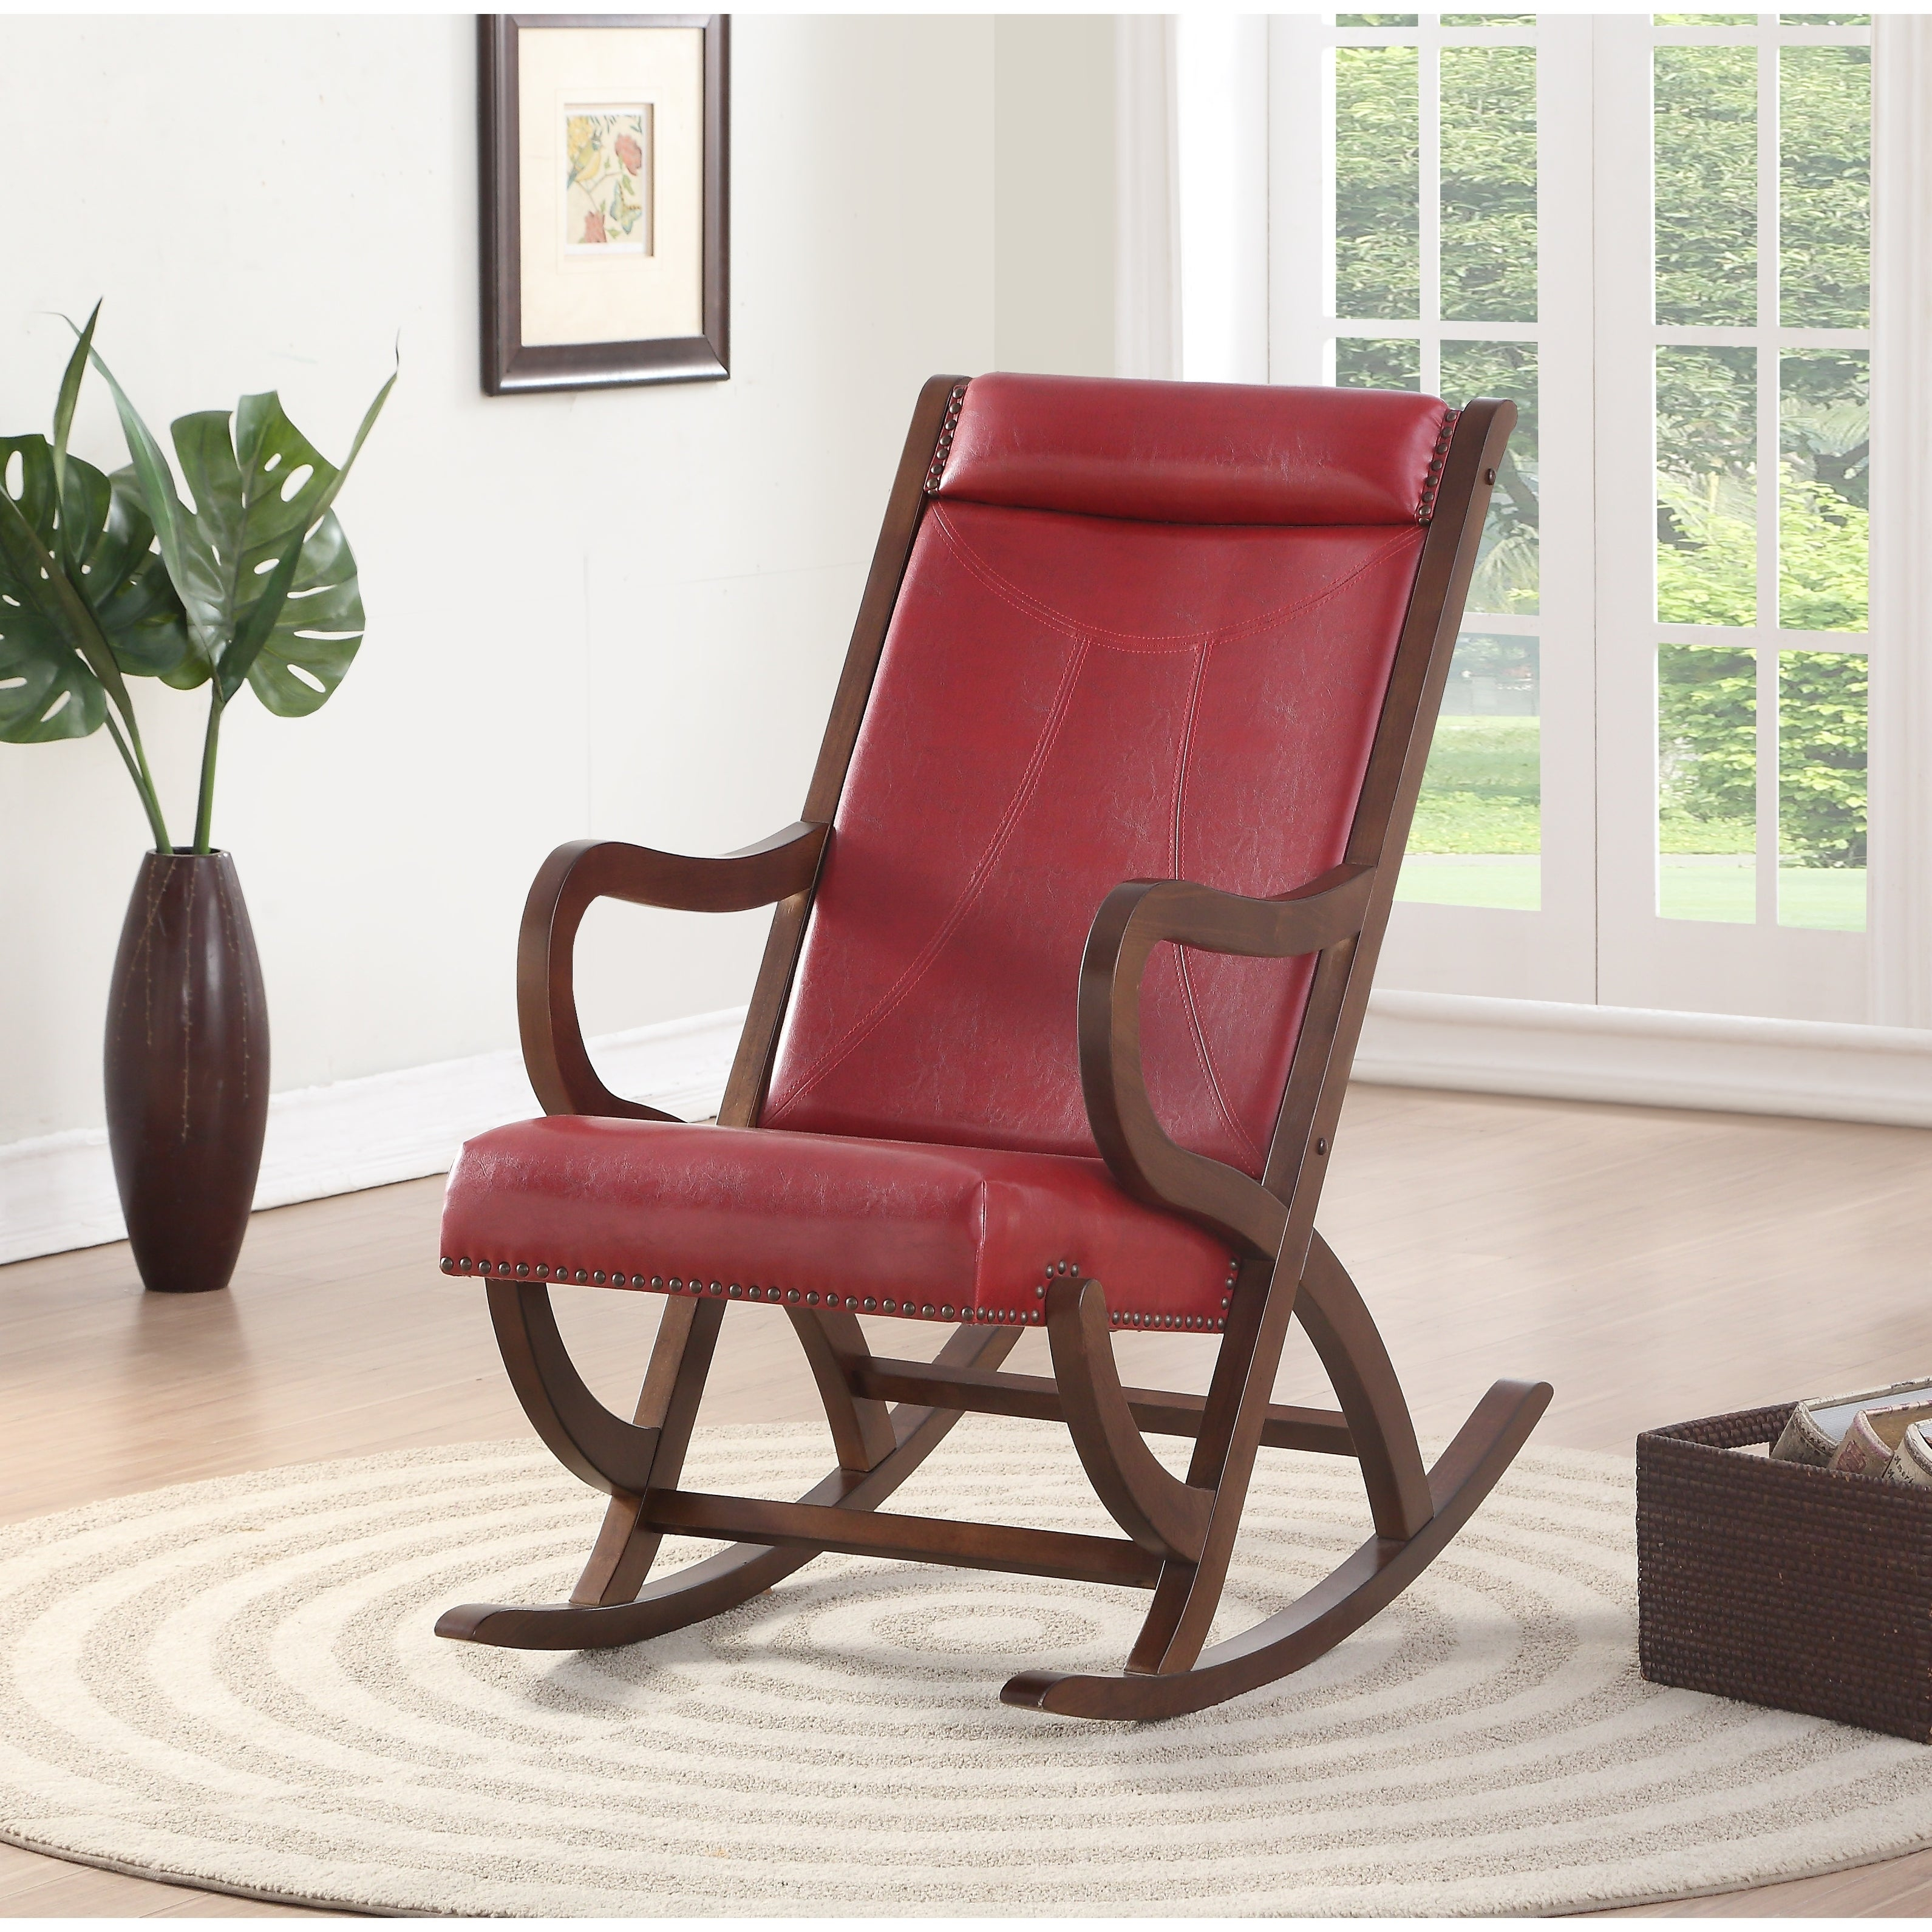 Buy Rocking Chairs, Traditional Living Room Chairs Online At Intended For Radford Traditional Rocking Chairs (View 3 of 20)